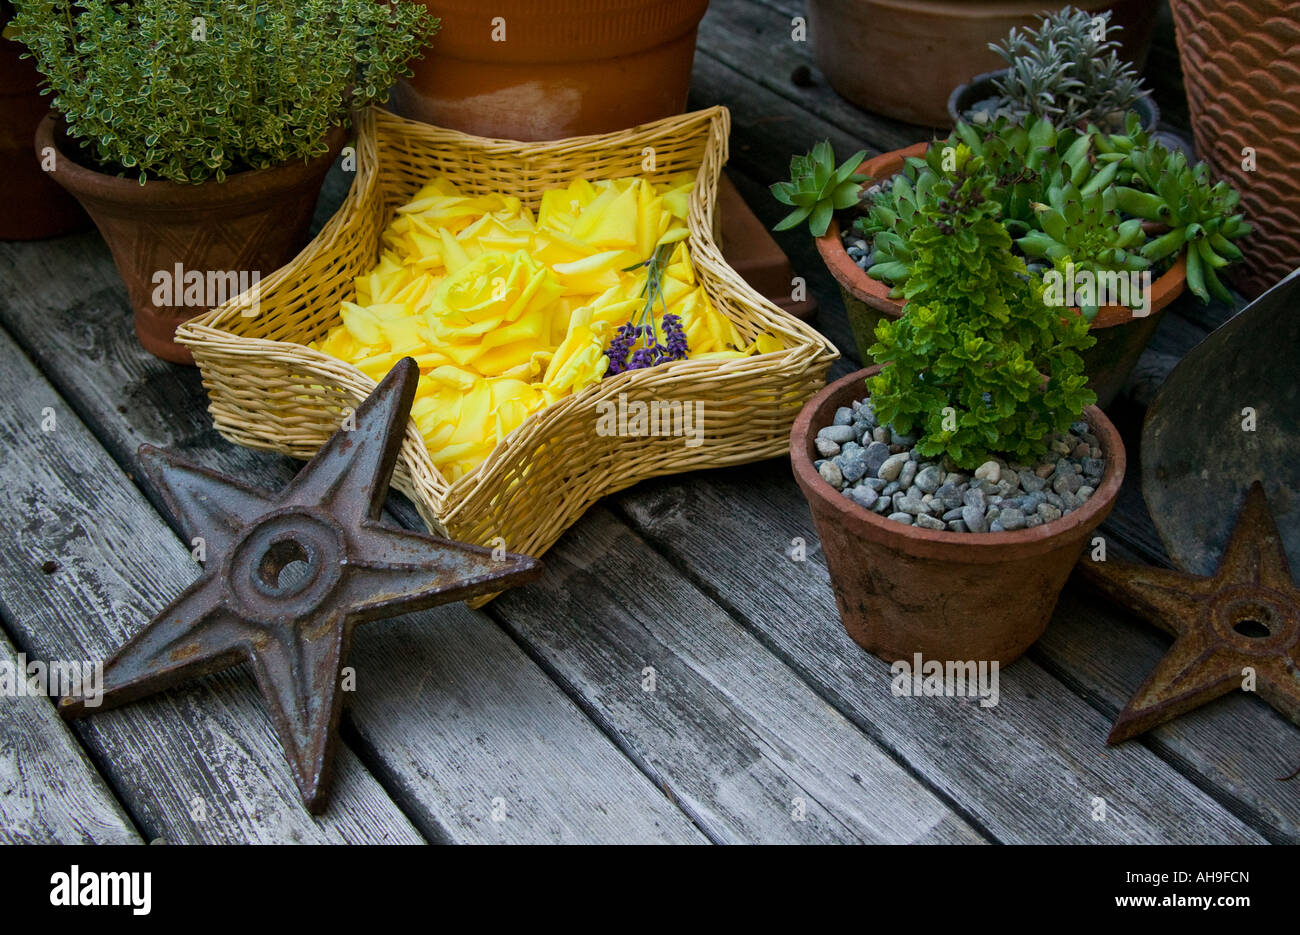 A Garden Arrangement Of Stars And Potted Plants.